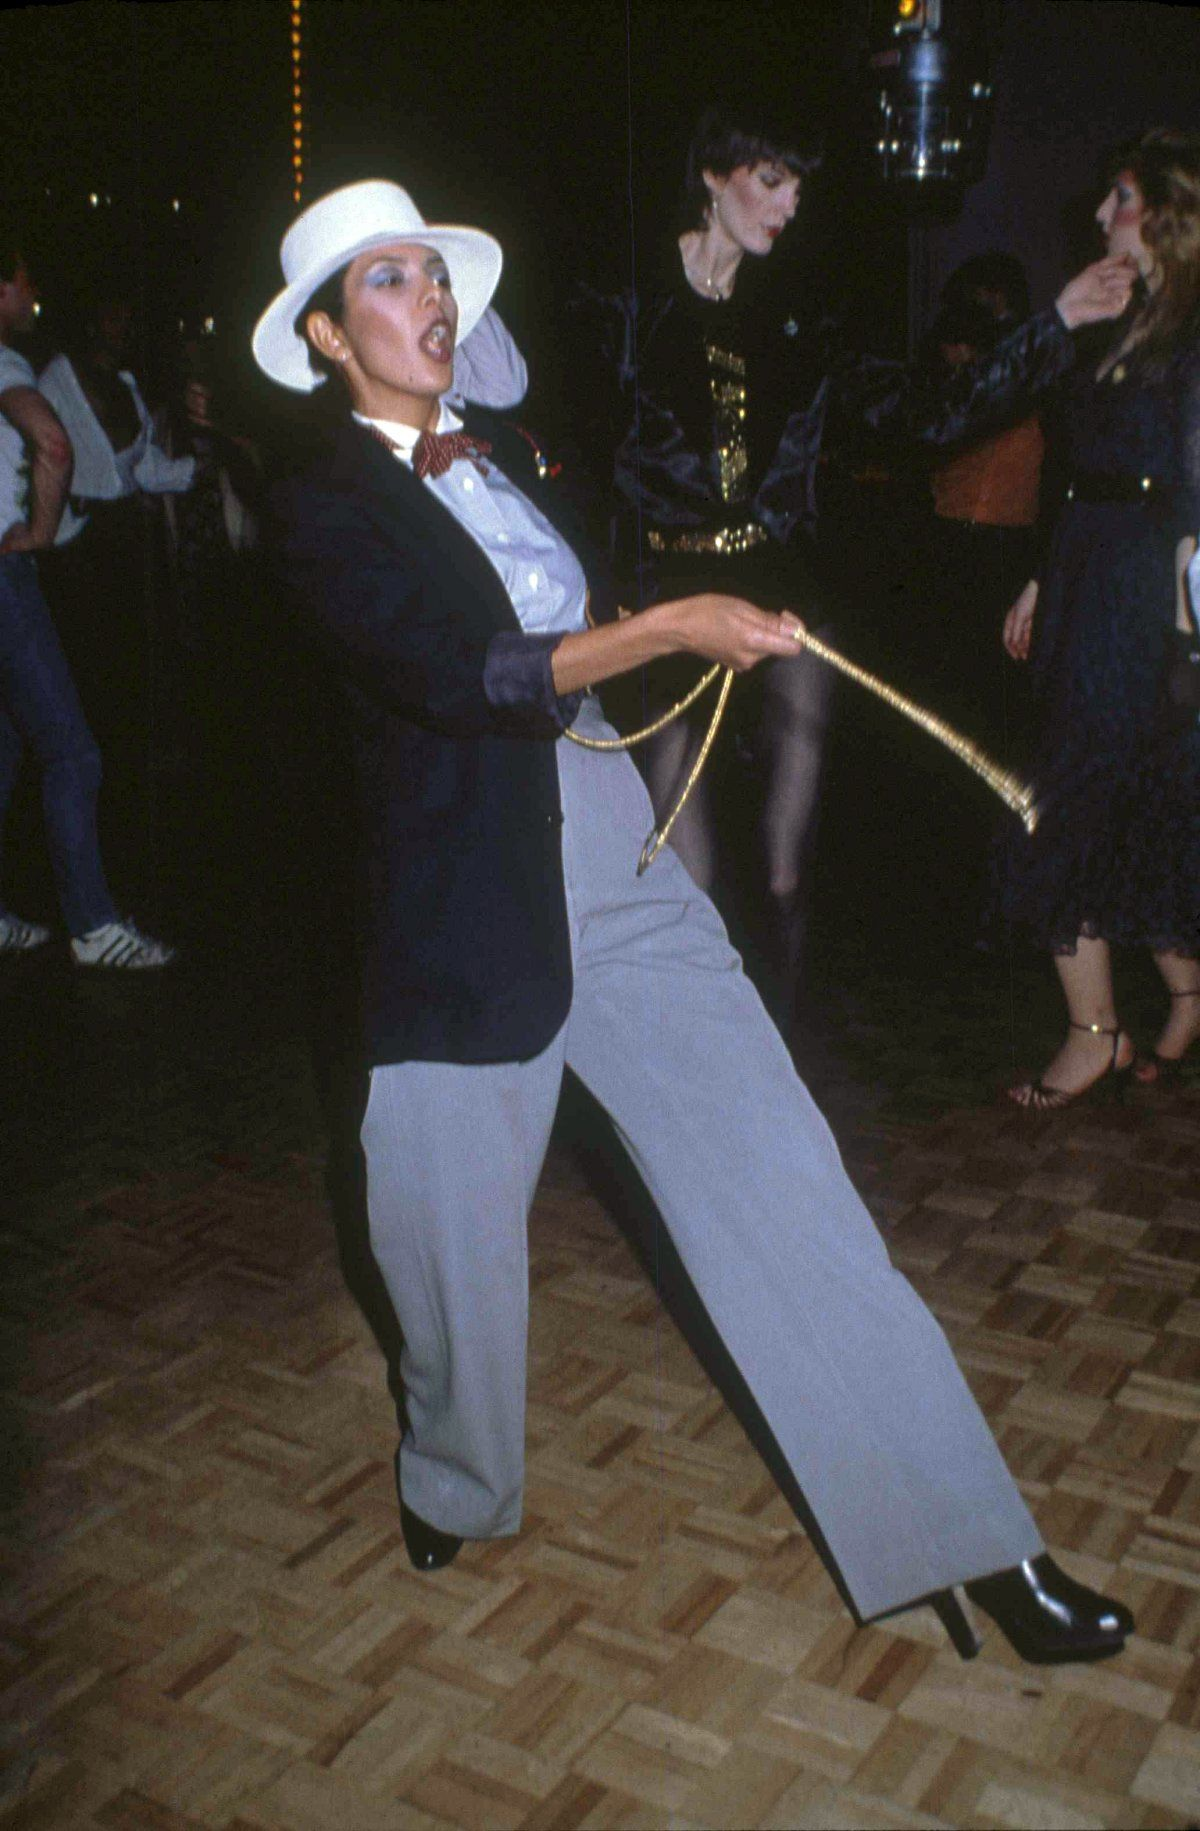 Women wearing zoot suits — menswear with high-waisted, wide-legged, tight-cuffed, pegged trousers — could be seen hitting the dance floor.